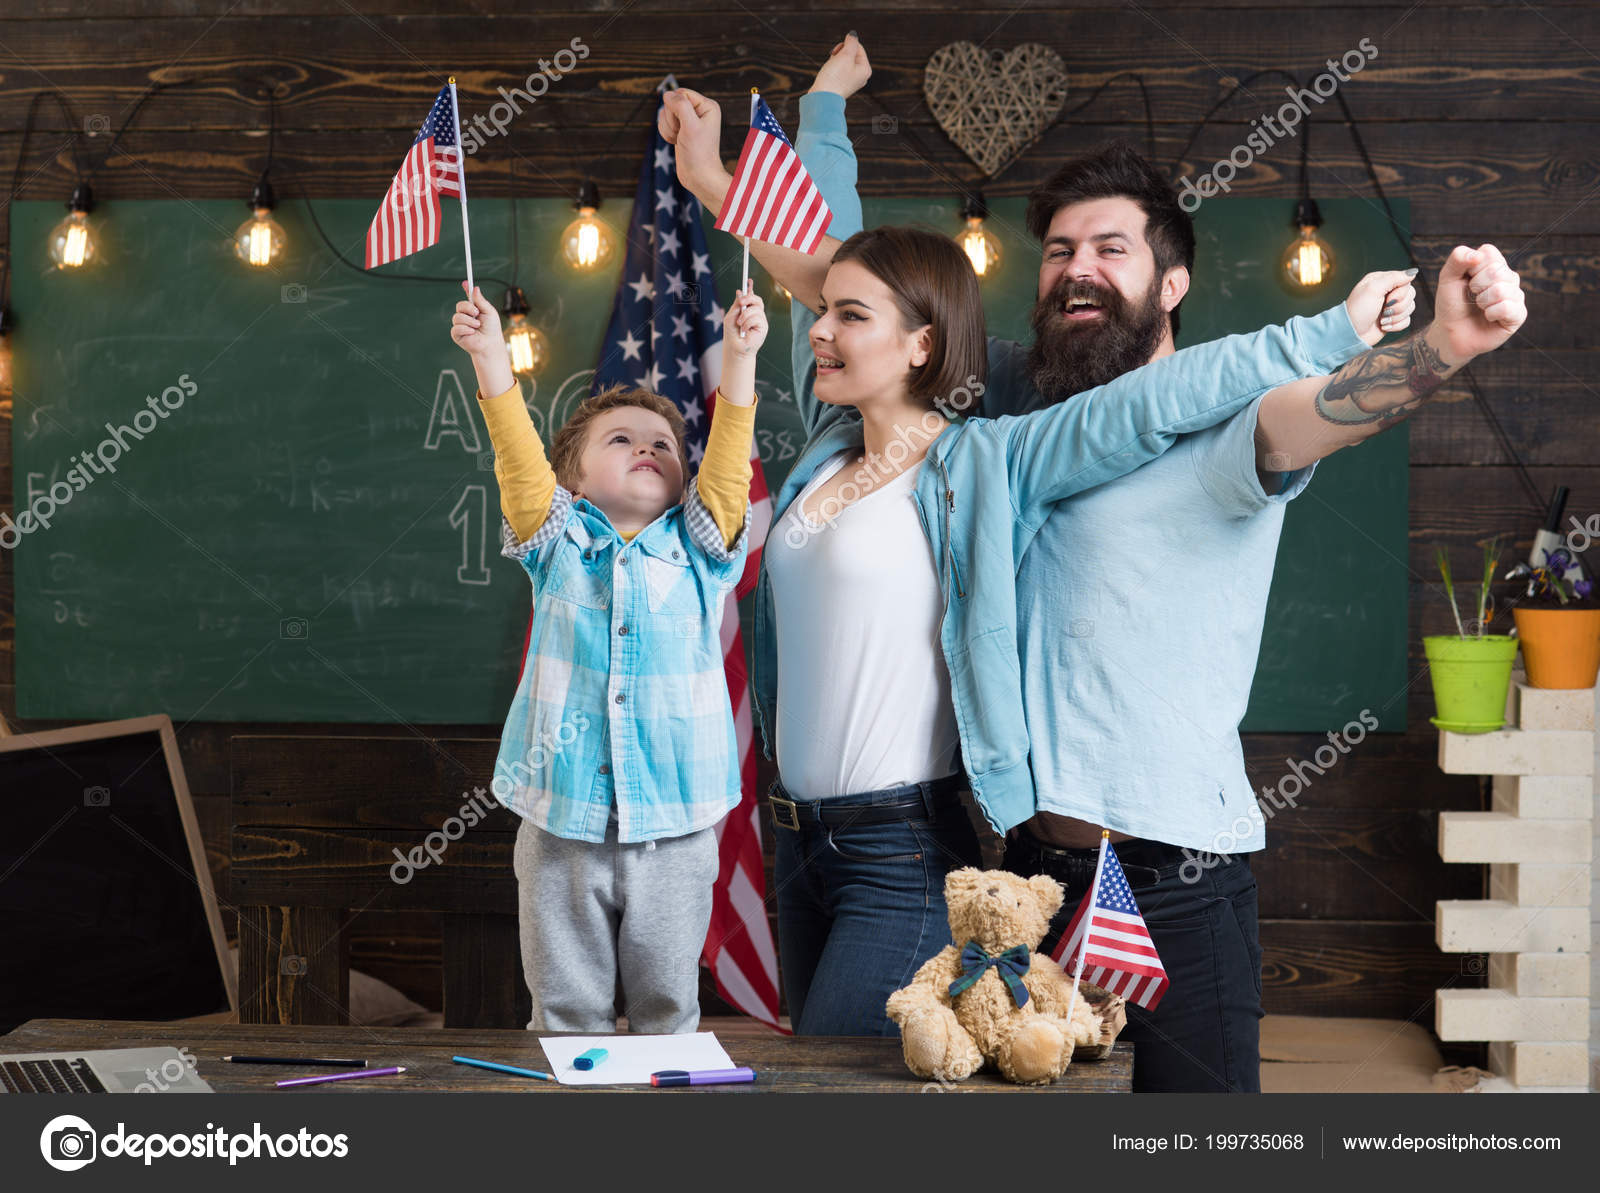 american family and traditions The transition from tradition and self-segregation characterizes the development of the american jewish family in the united states these processes affected virtually every aspect of family life, from size and residential patterns to marriage and career choices.